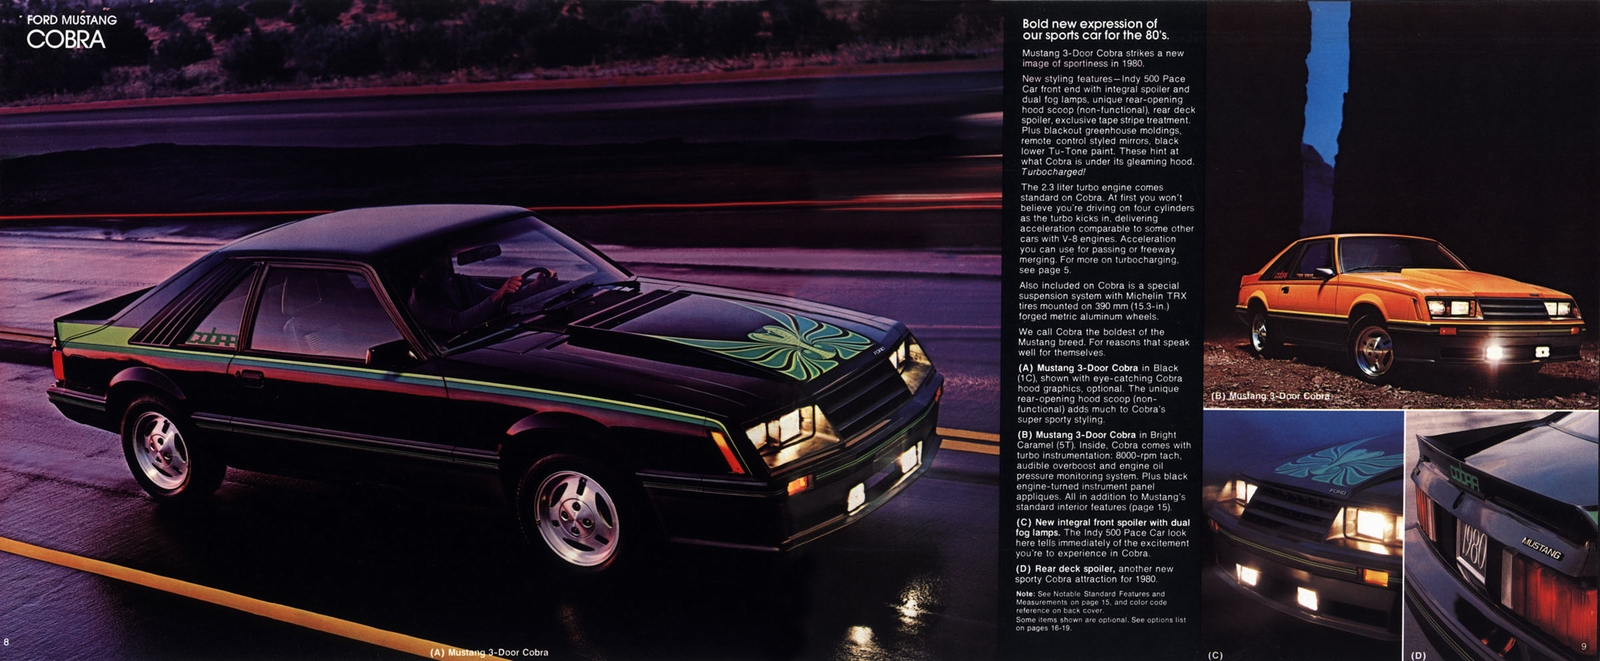 1980 ford mustang cobra hatchback coupe eighties cars